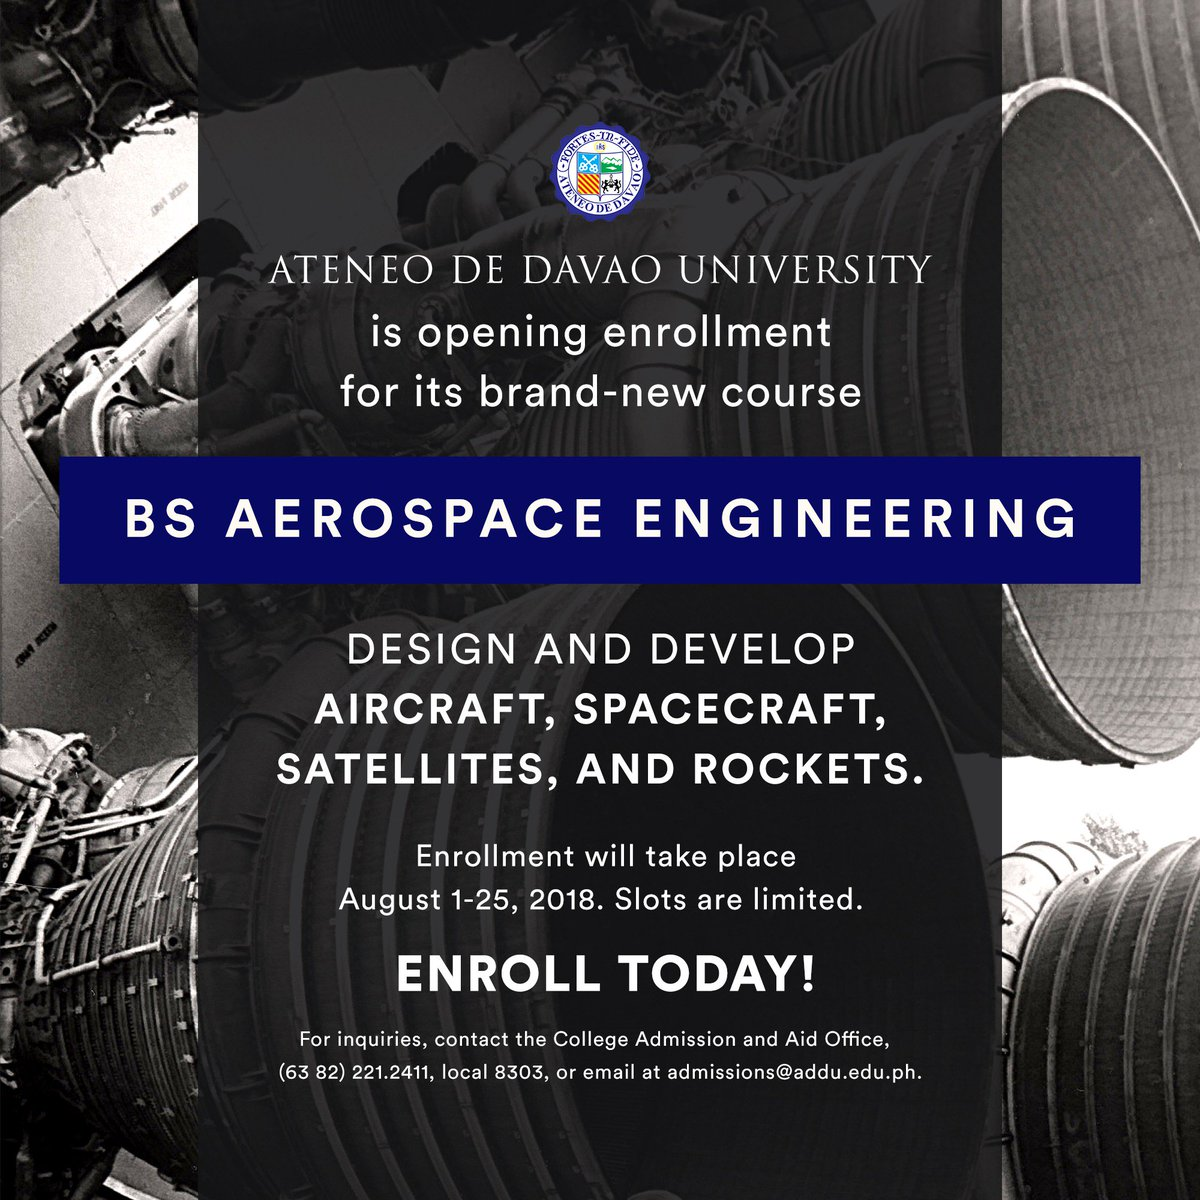 ENROLL NOW   @ADDU_Official is opening enrollment for BS in Aerospace Engineering until 25 August 2018. Learn the relationship between the earth and space, such as monitoring the Earth's atmospheric conditions. Design and develop aircraft, spacecraft, satellites, and rockets. <br>http://pic.twitter.com/rzlWpsWQrK